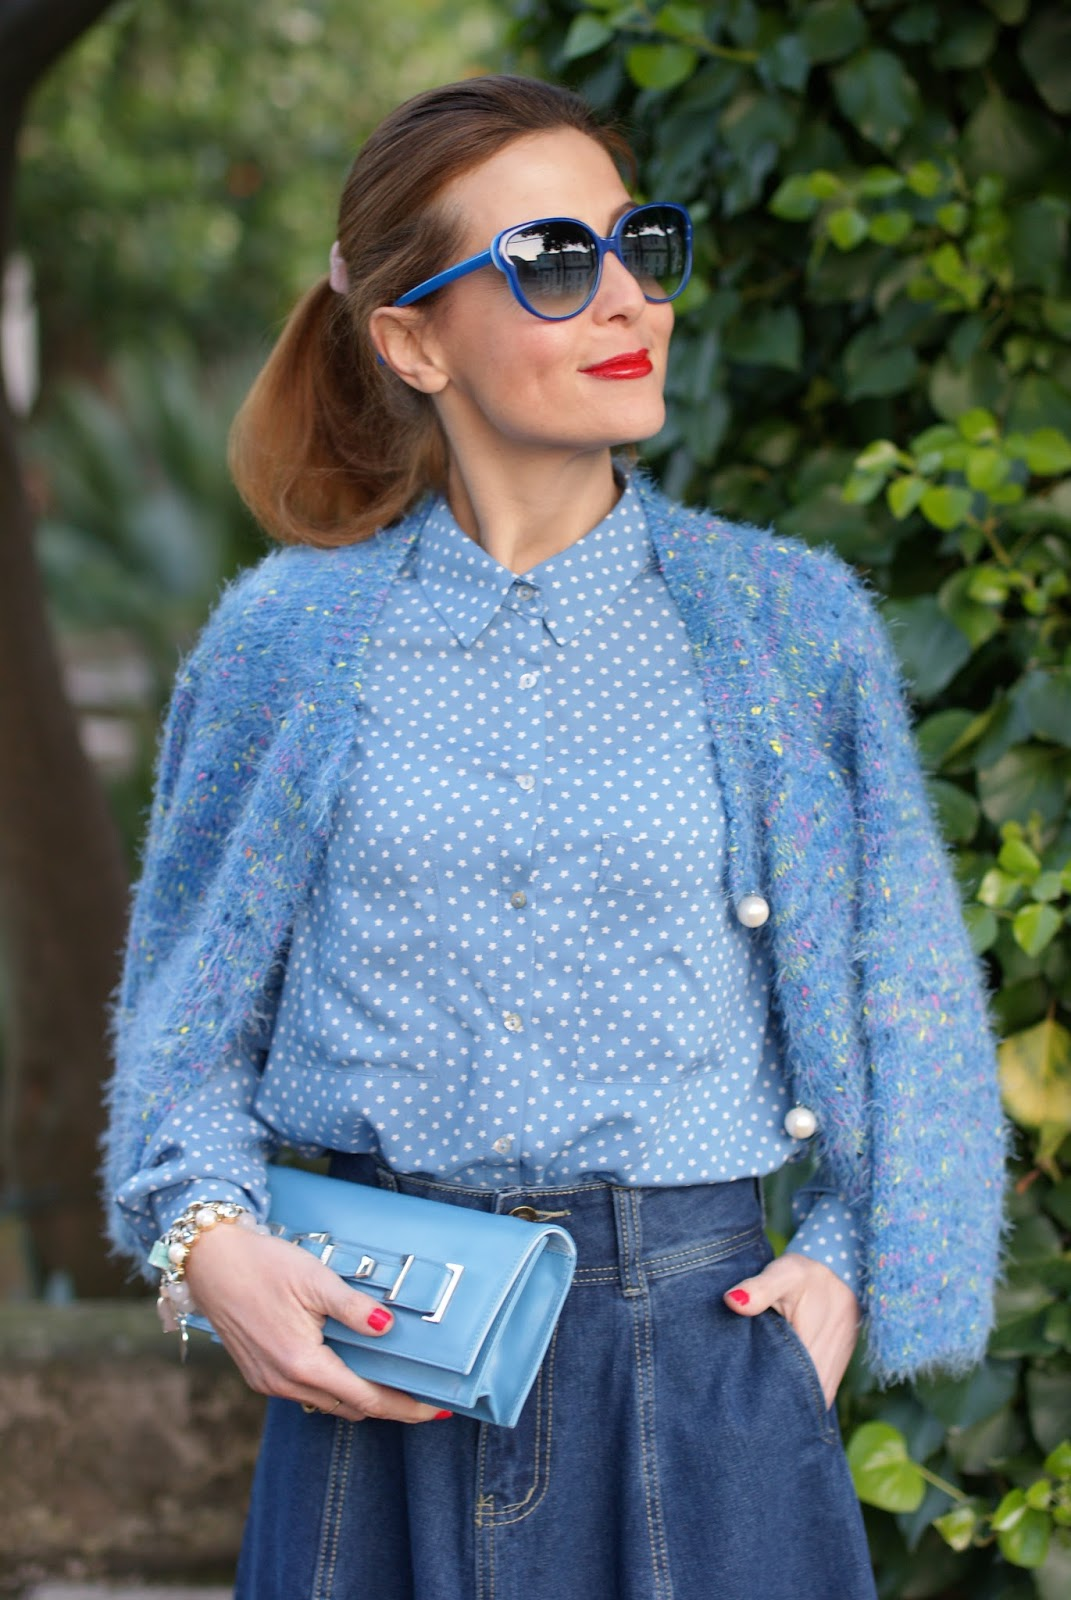 Blue serenity look with star print shirt and Le Silla shoes on Fashion and Cookies fashion blog, fashion blogger style